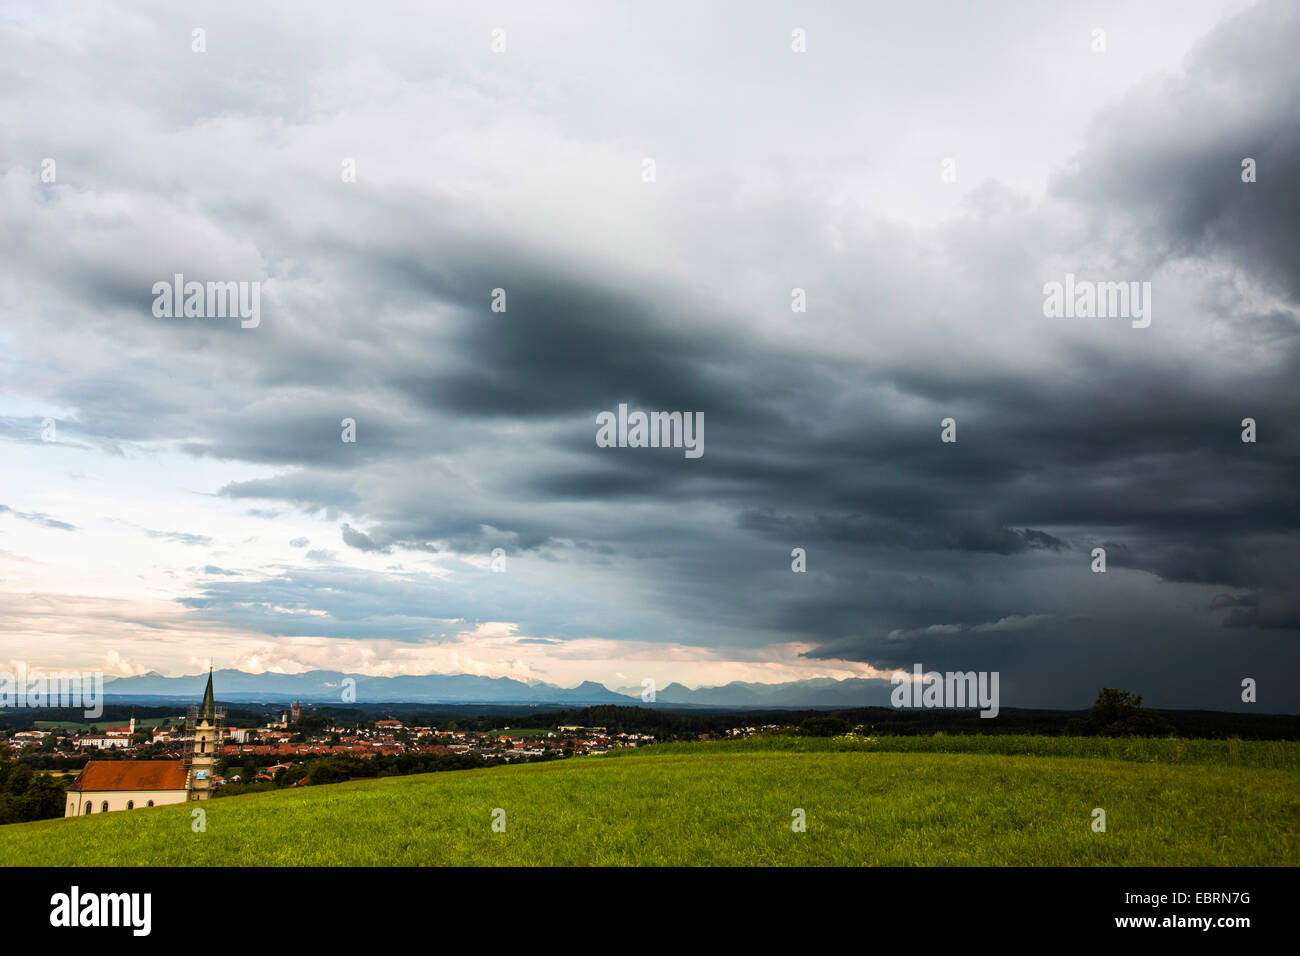 thunder clouds and heavy rain, cumulunimbus clouds, the Alps in background, Germany, Bavaria, Alpenvorland - Stock Image